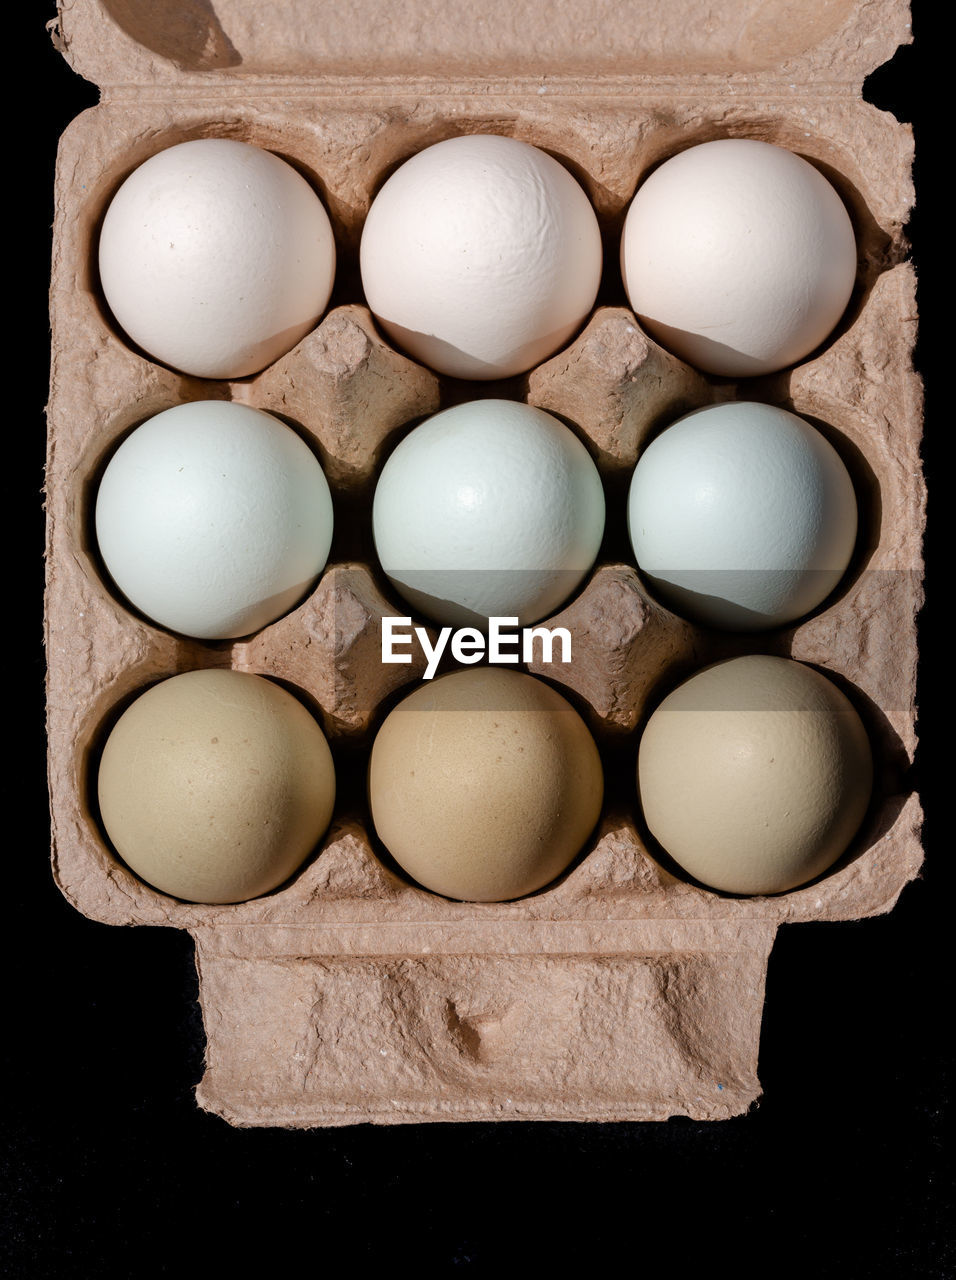 food and drink, food, egg, still life, wellbeing, freshness, healthy eating, indoors, directly above, arrangement, white color, high angle view, side by side, no people, container, egg carton, order, raw food, large group of objects, in a row, black background, tray